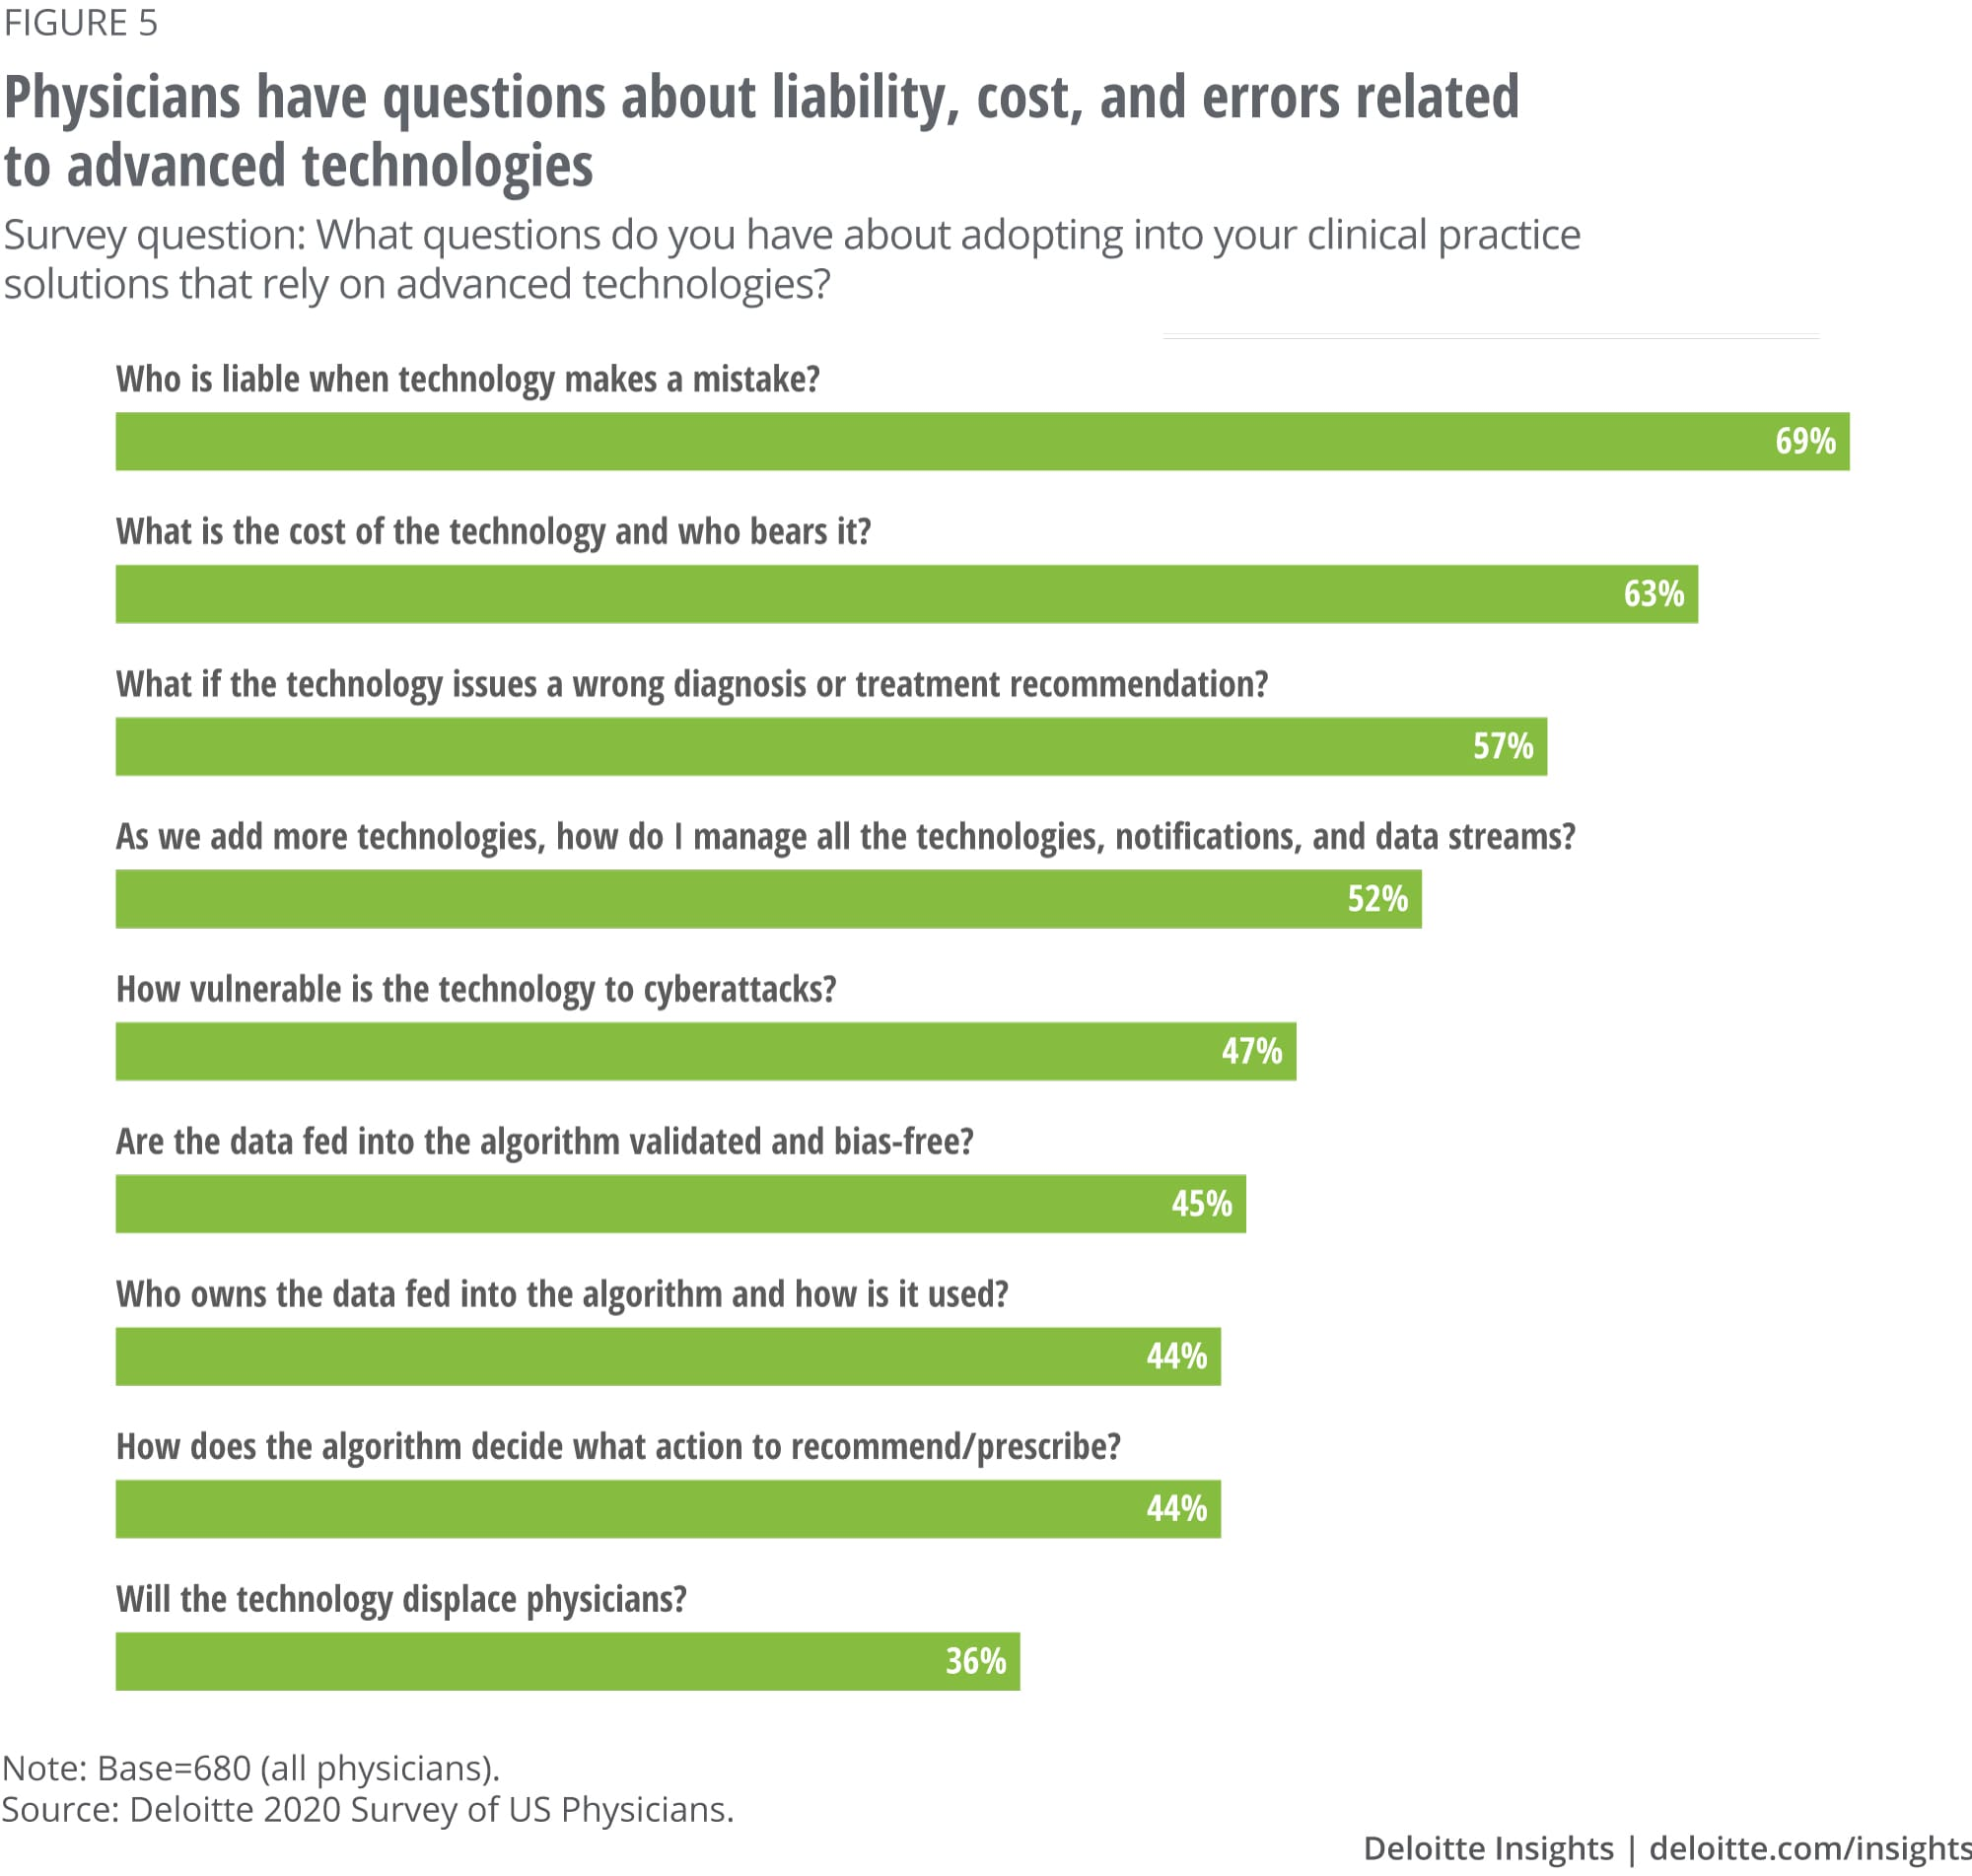 Physicians have questions about liability, cost, and errors related to advanced technologies